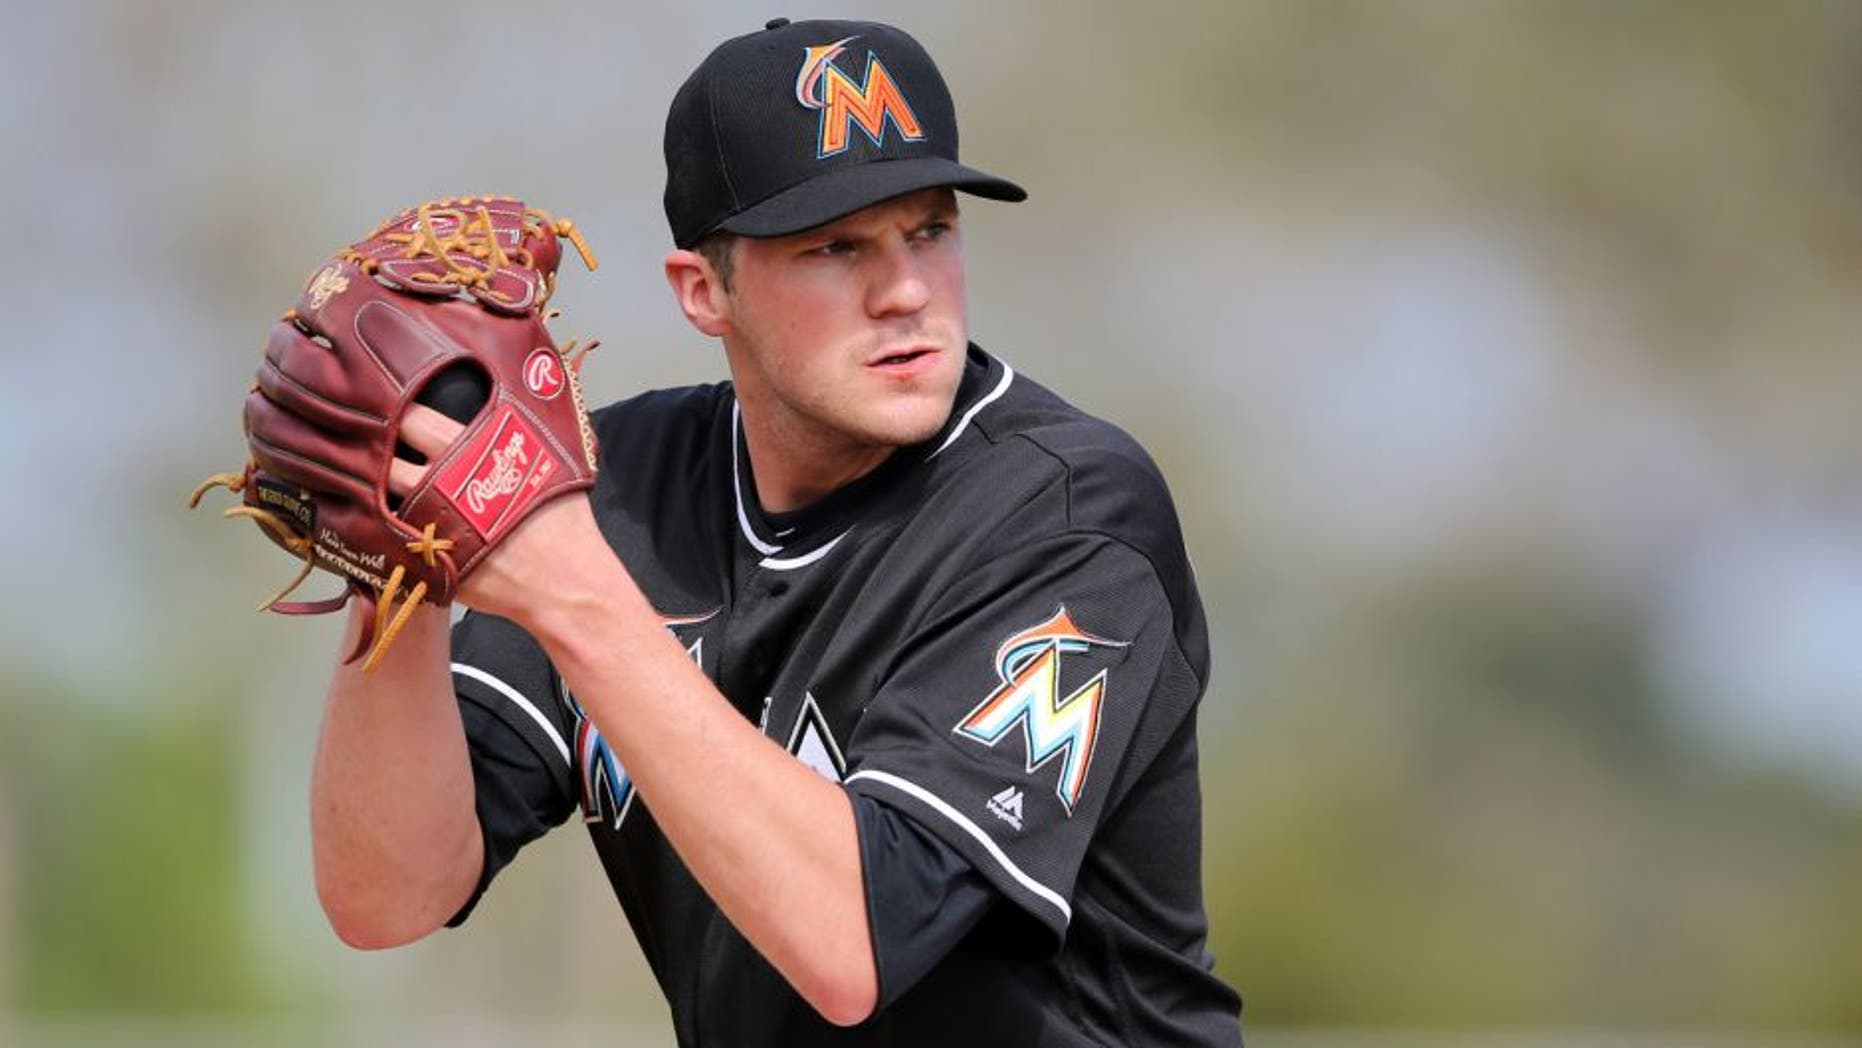 Feb 21, 2016; Jupiter, FL, USA; Miami Marlins pitcher Paul Clemens (50) during work out drills at Roger Dean Stadium. Mandatory Credit: Steve Mitchell-USA TODAY Sports